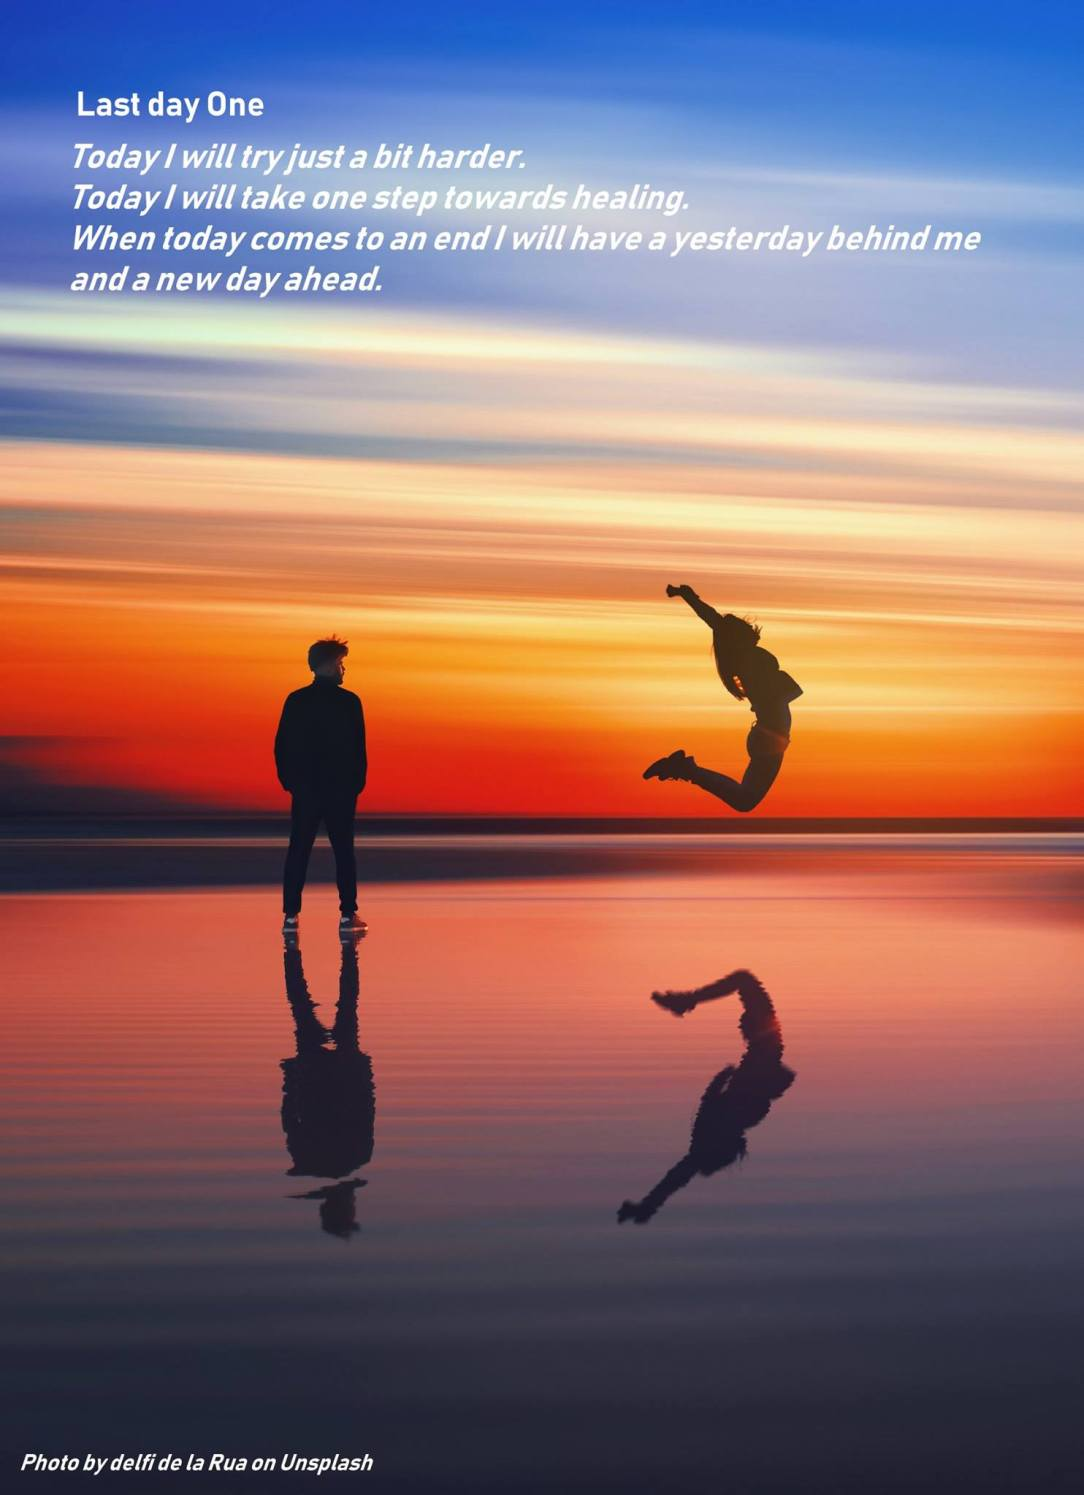 Persons at sunset with text, related with sober parenting